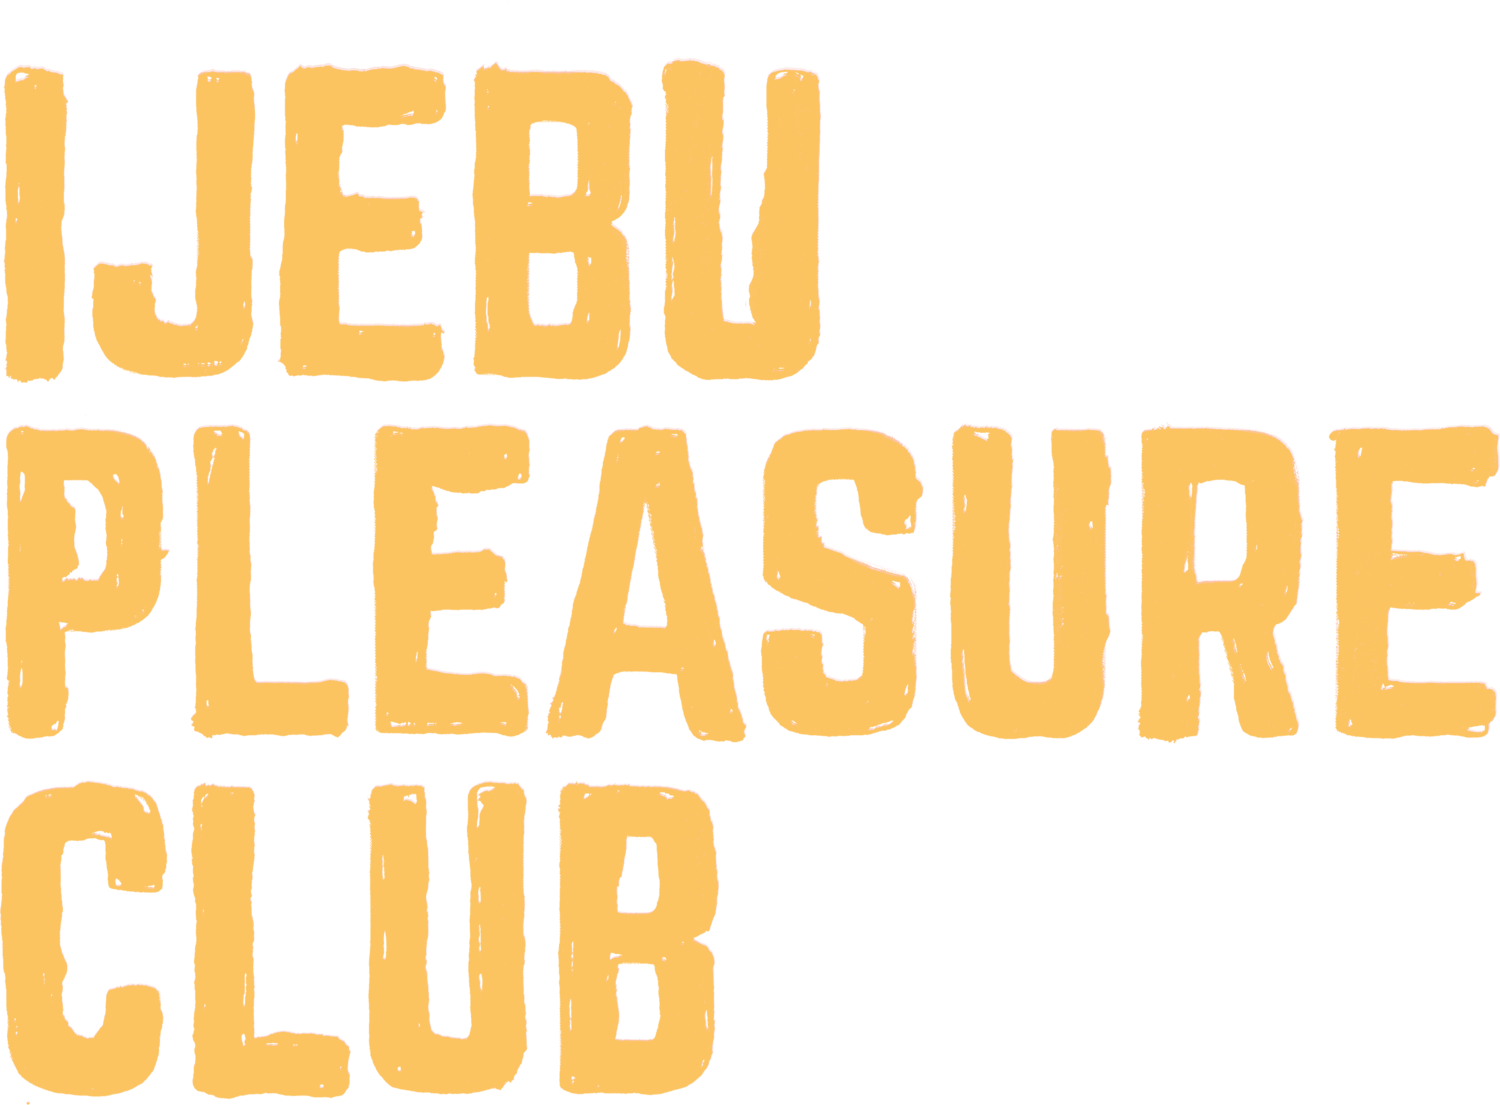 Ijebu Pleasure Club